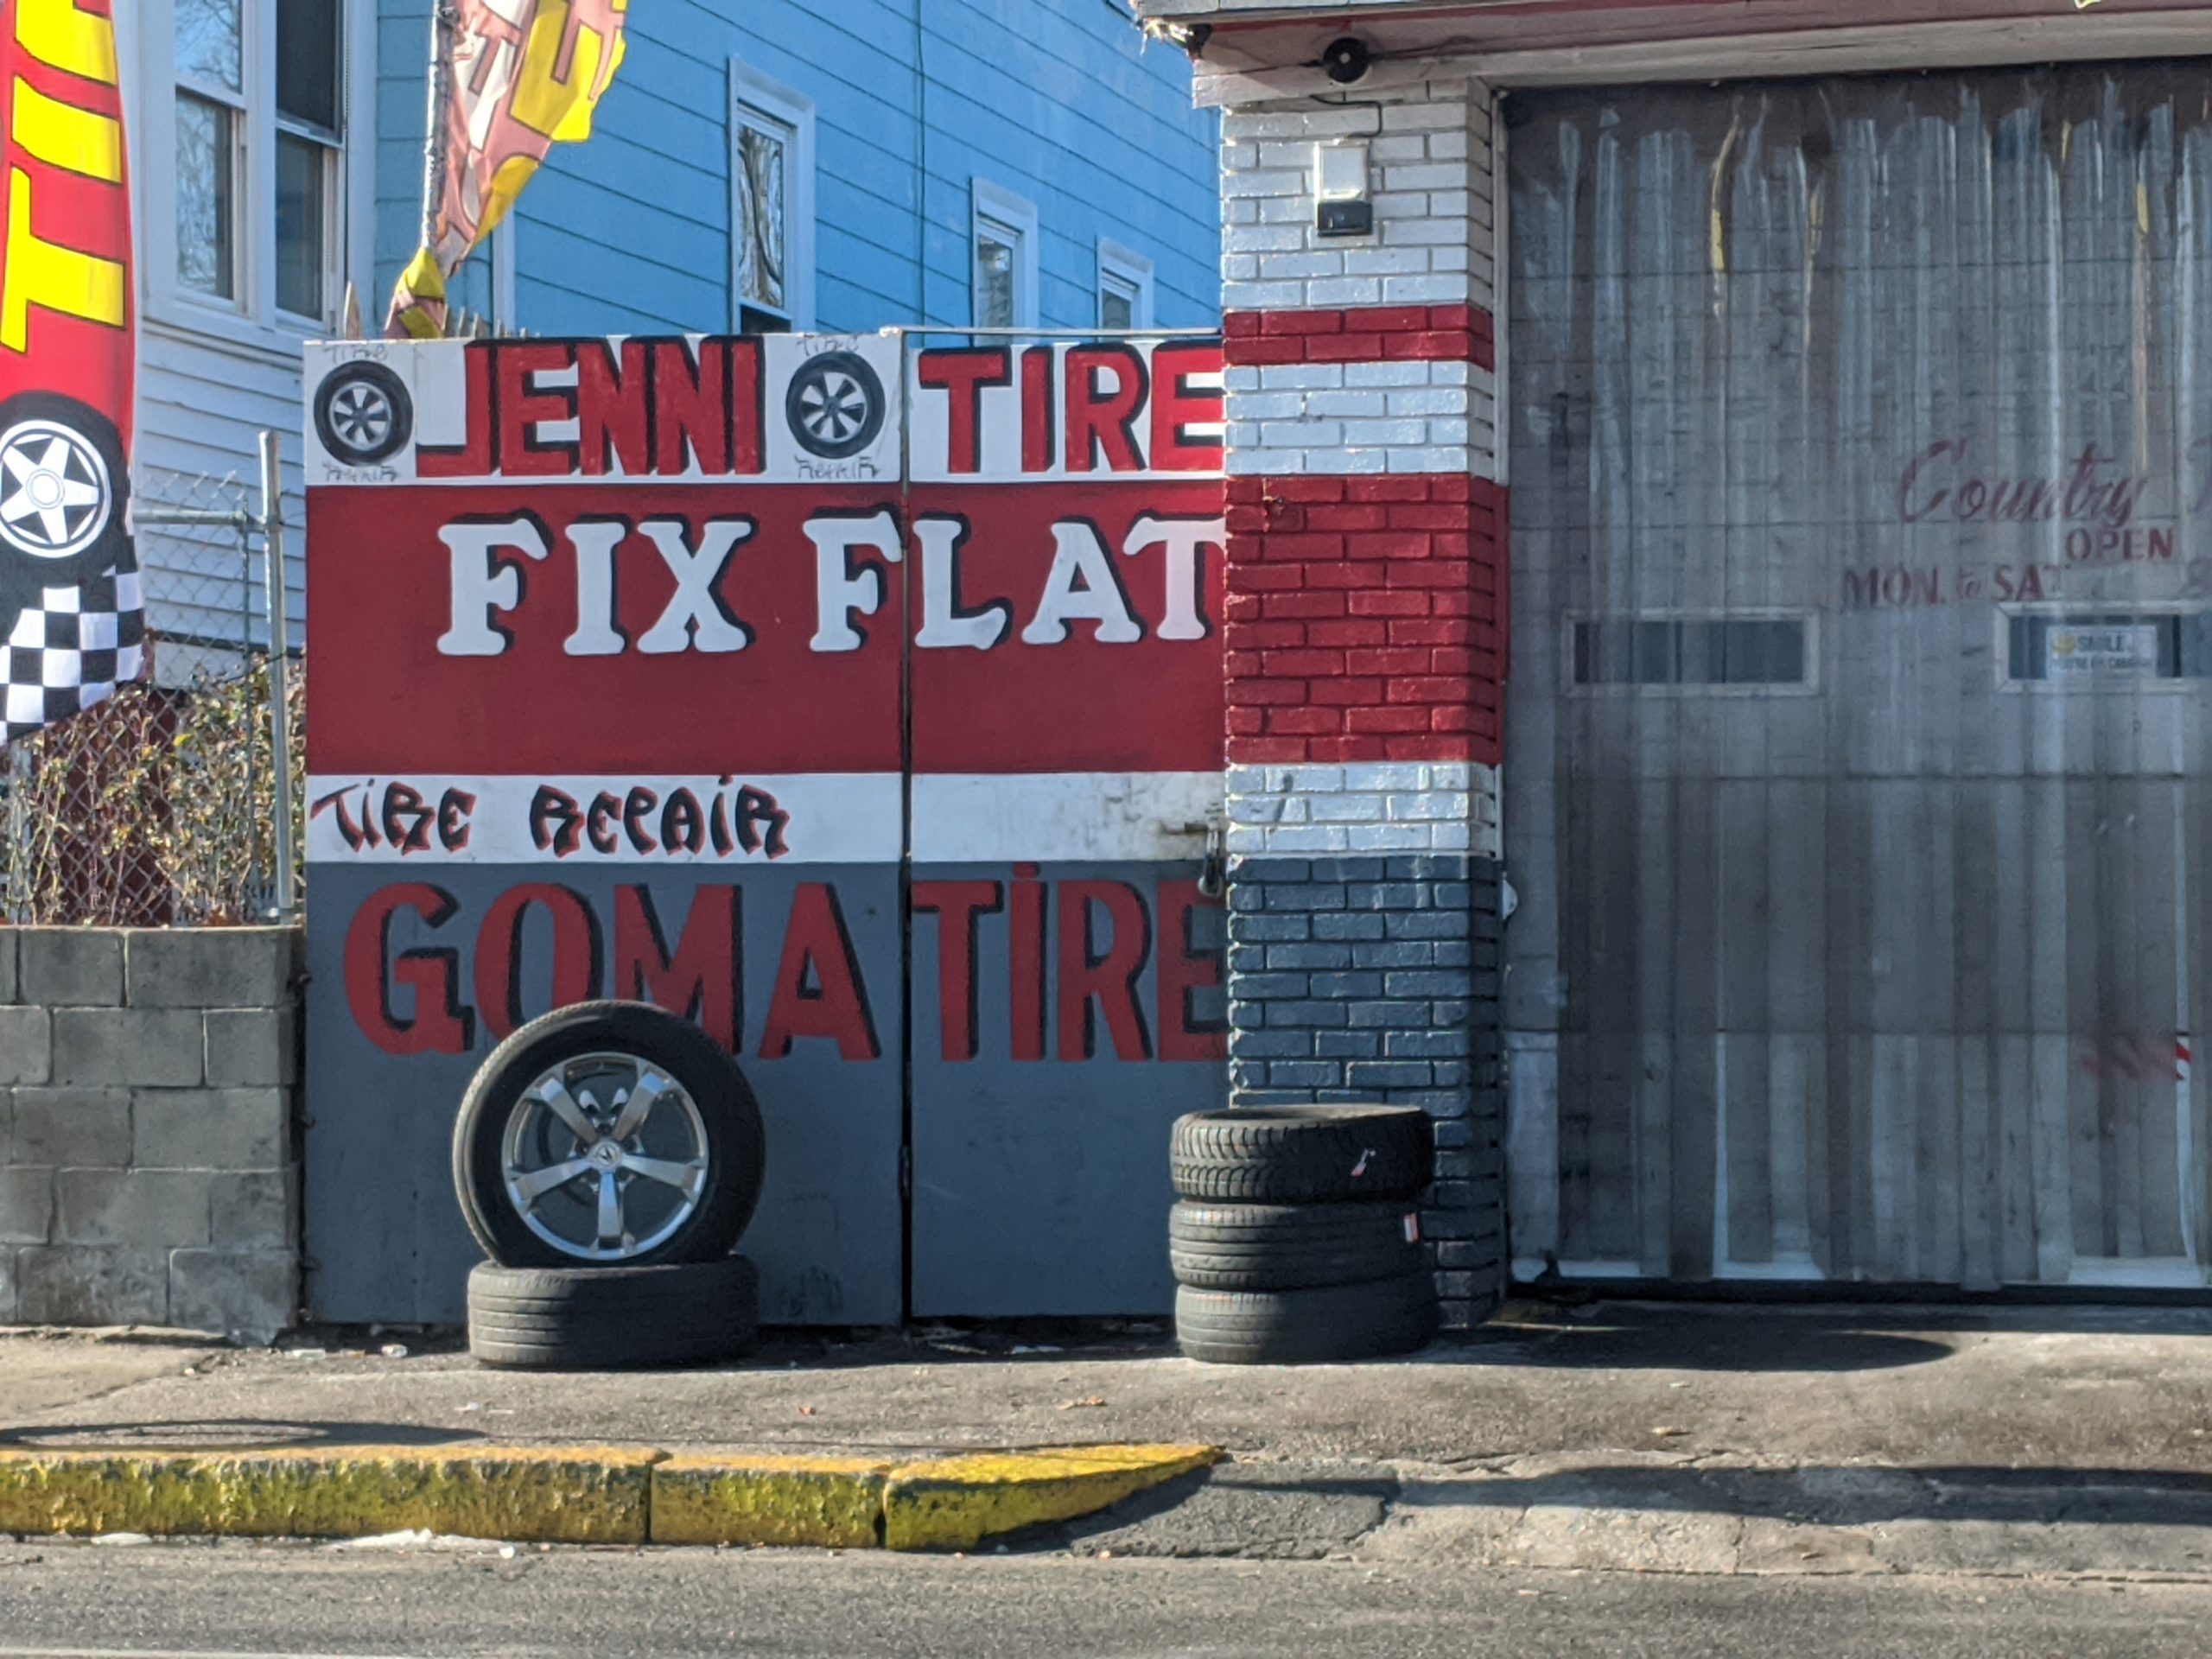 Jenni Tire / Fix Flat